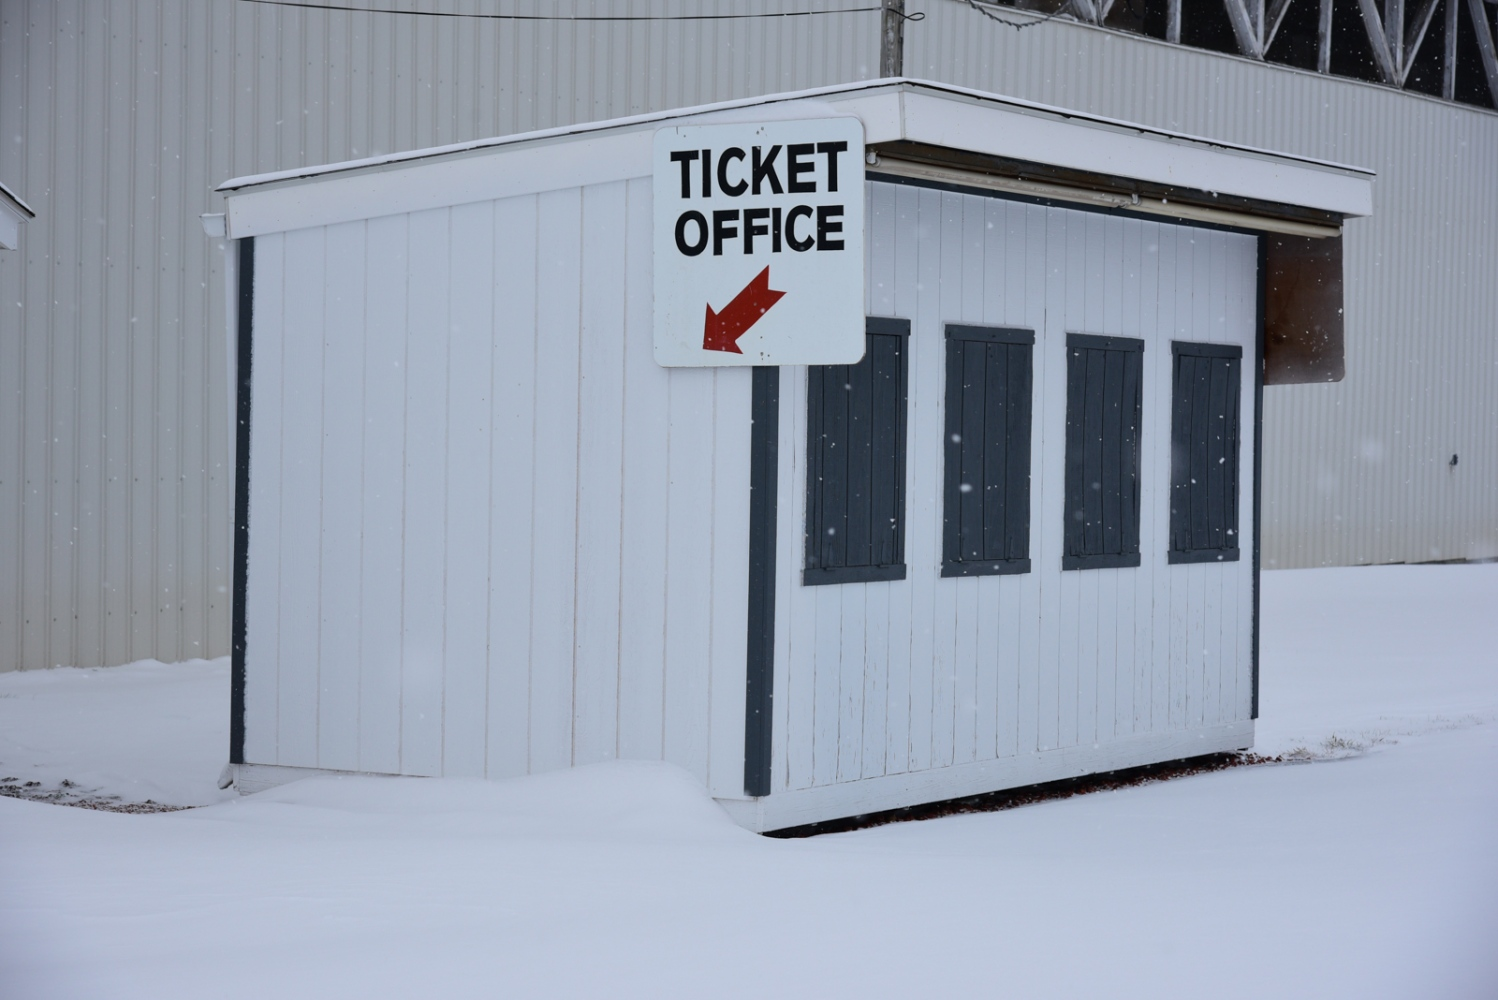 Ticket Office, December